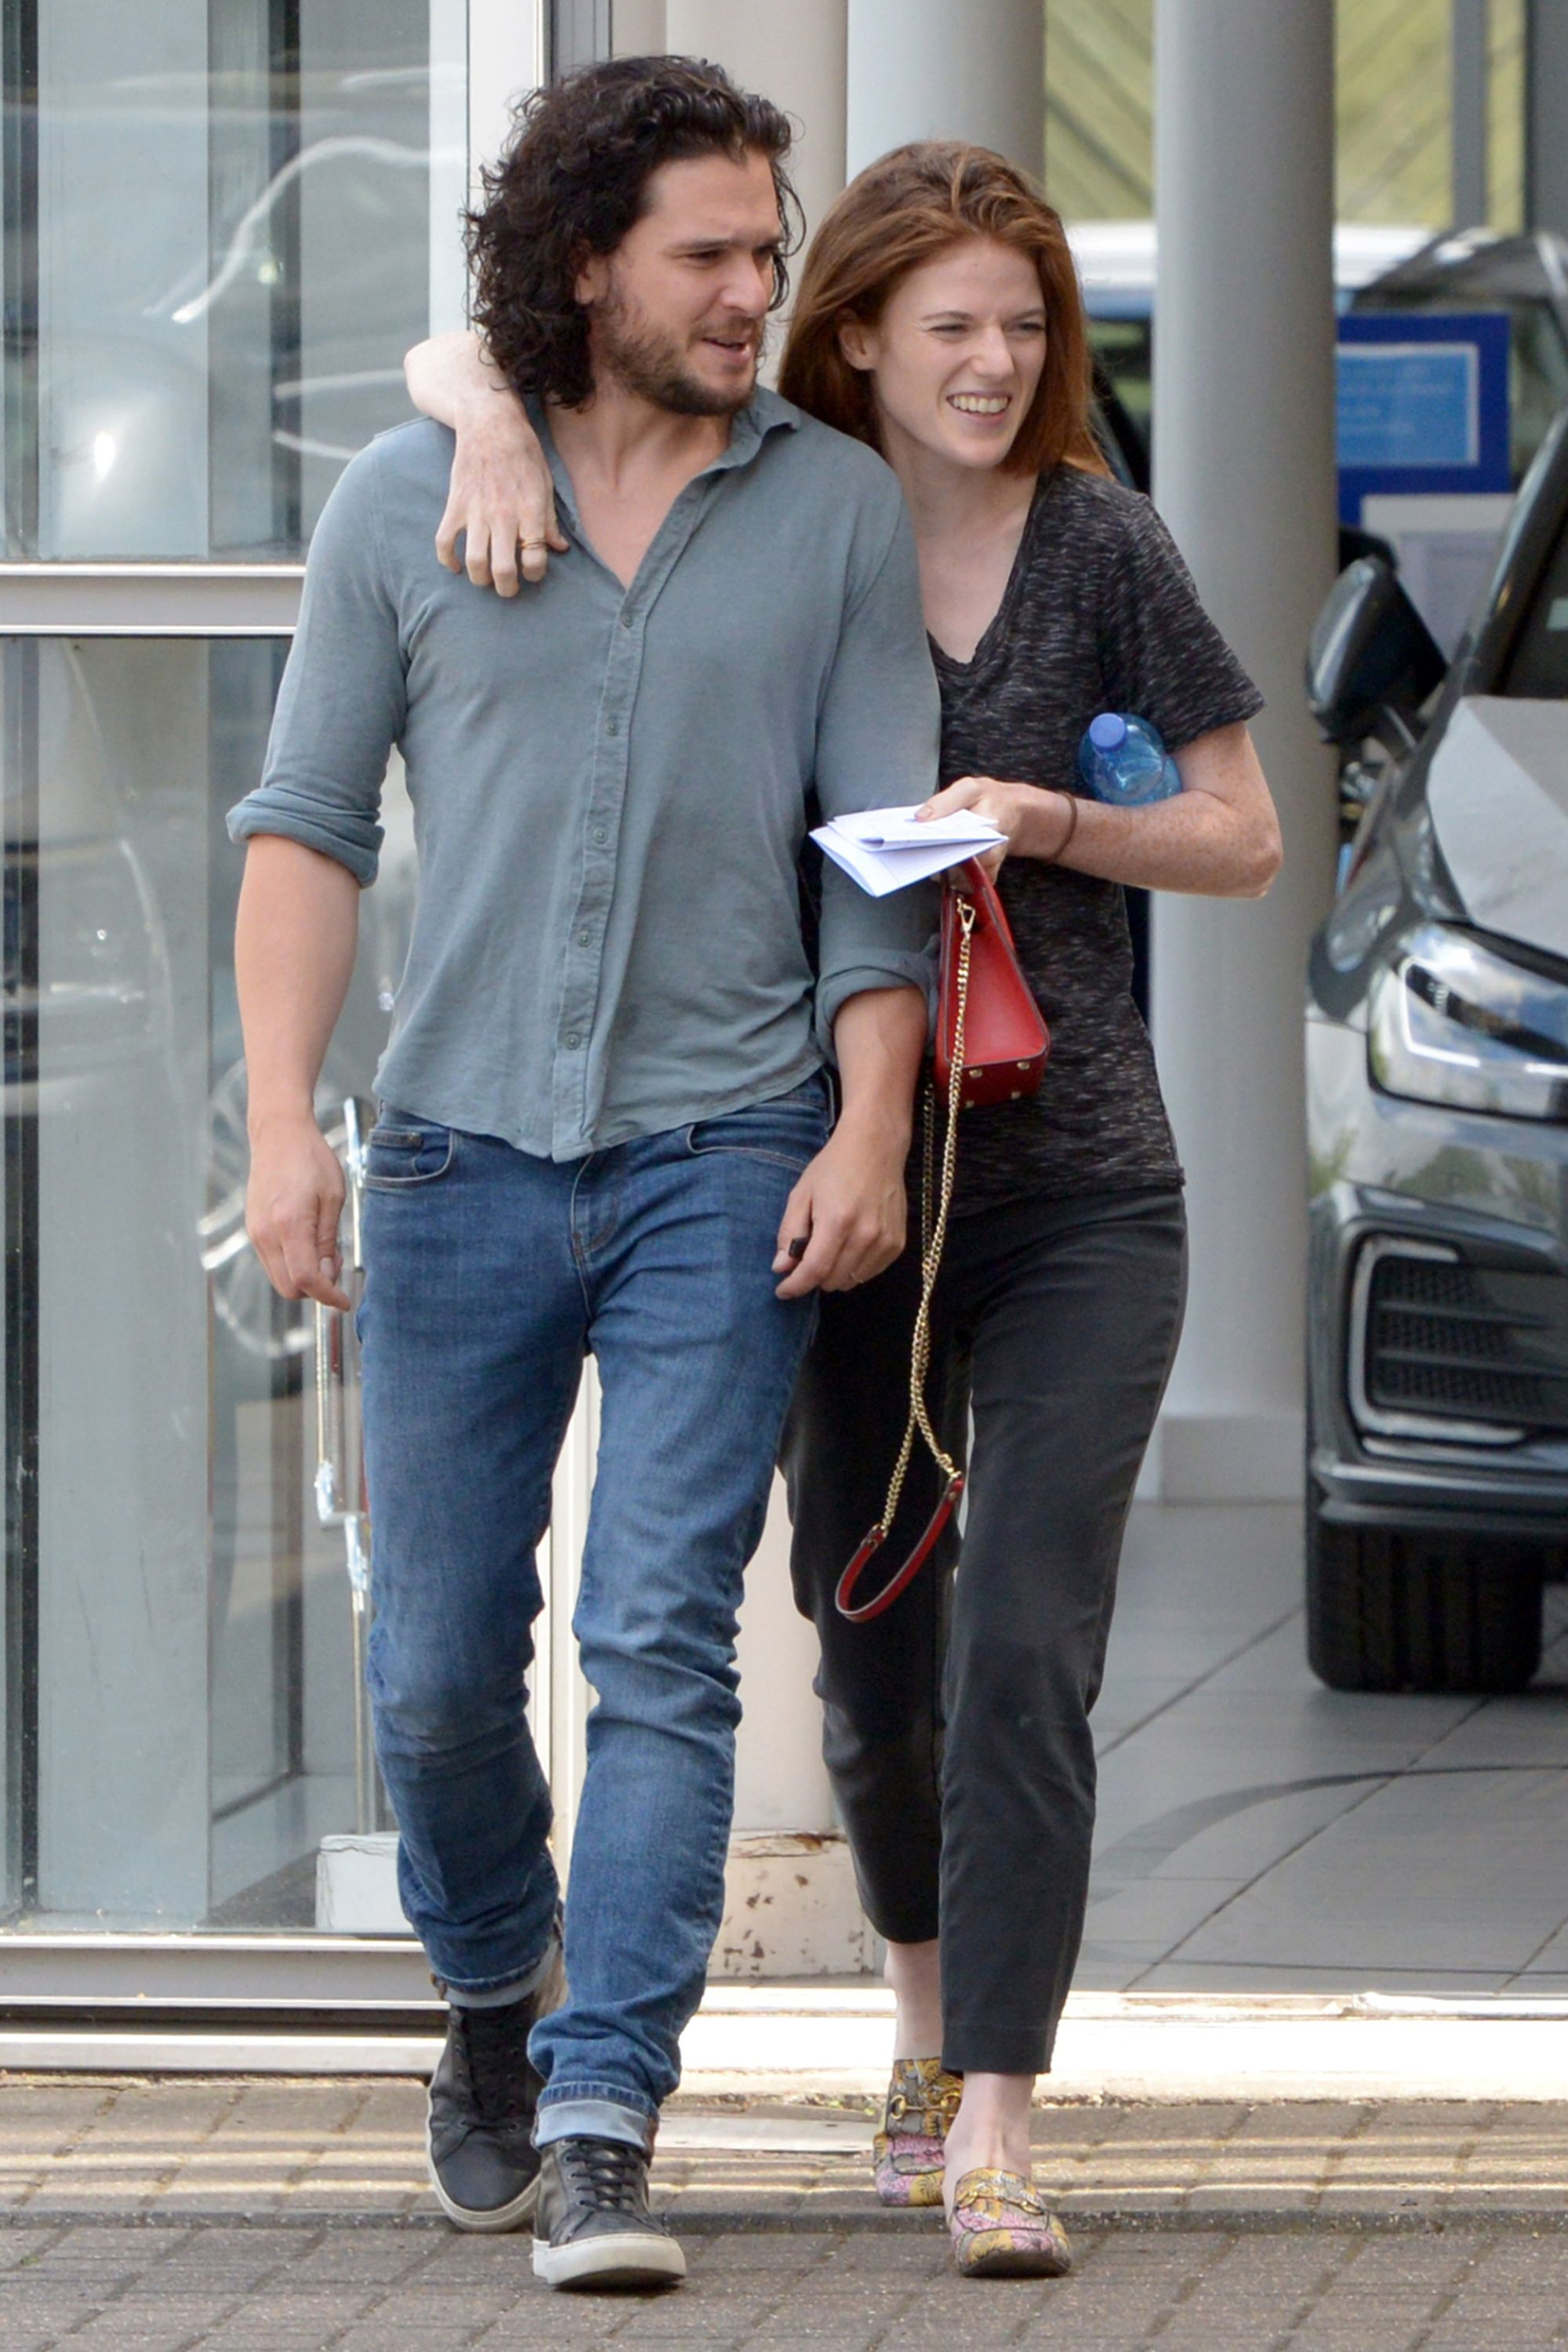 Kit Harington Wedding.Kit Harington And Rose Leslie Look So In Love During Their First